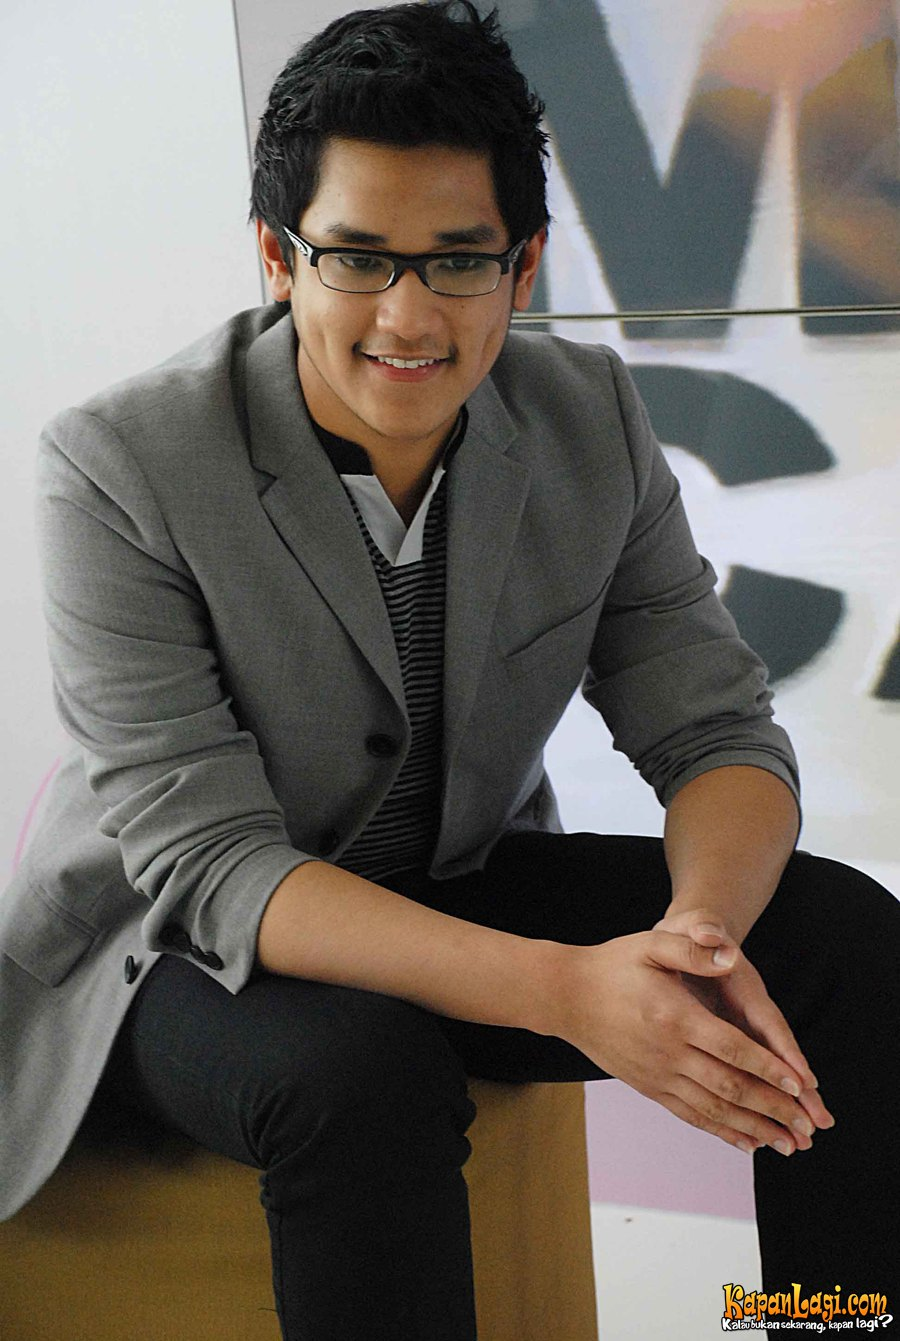 Afgansyah Reza earned a  million dollar salary, leaving the net worth at 1.5 million in 2017